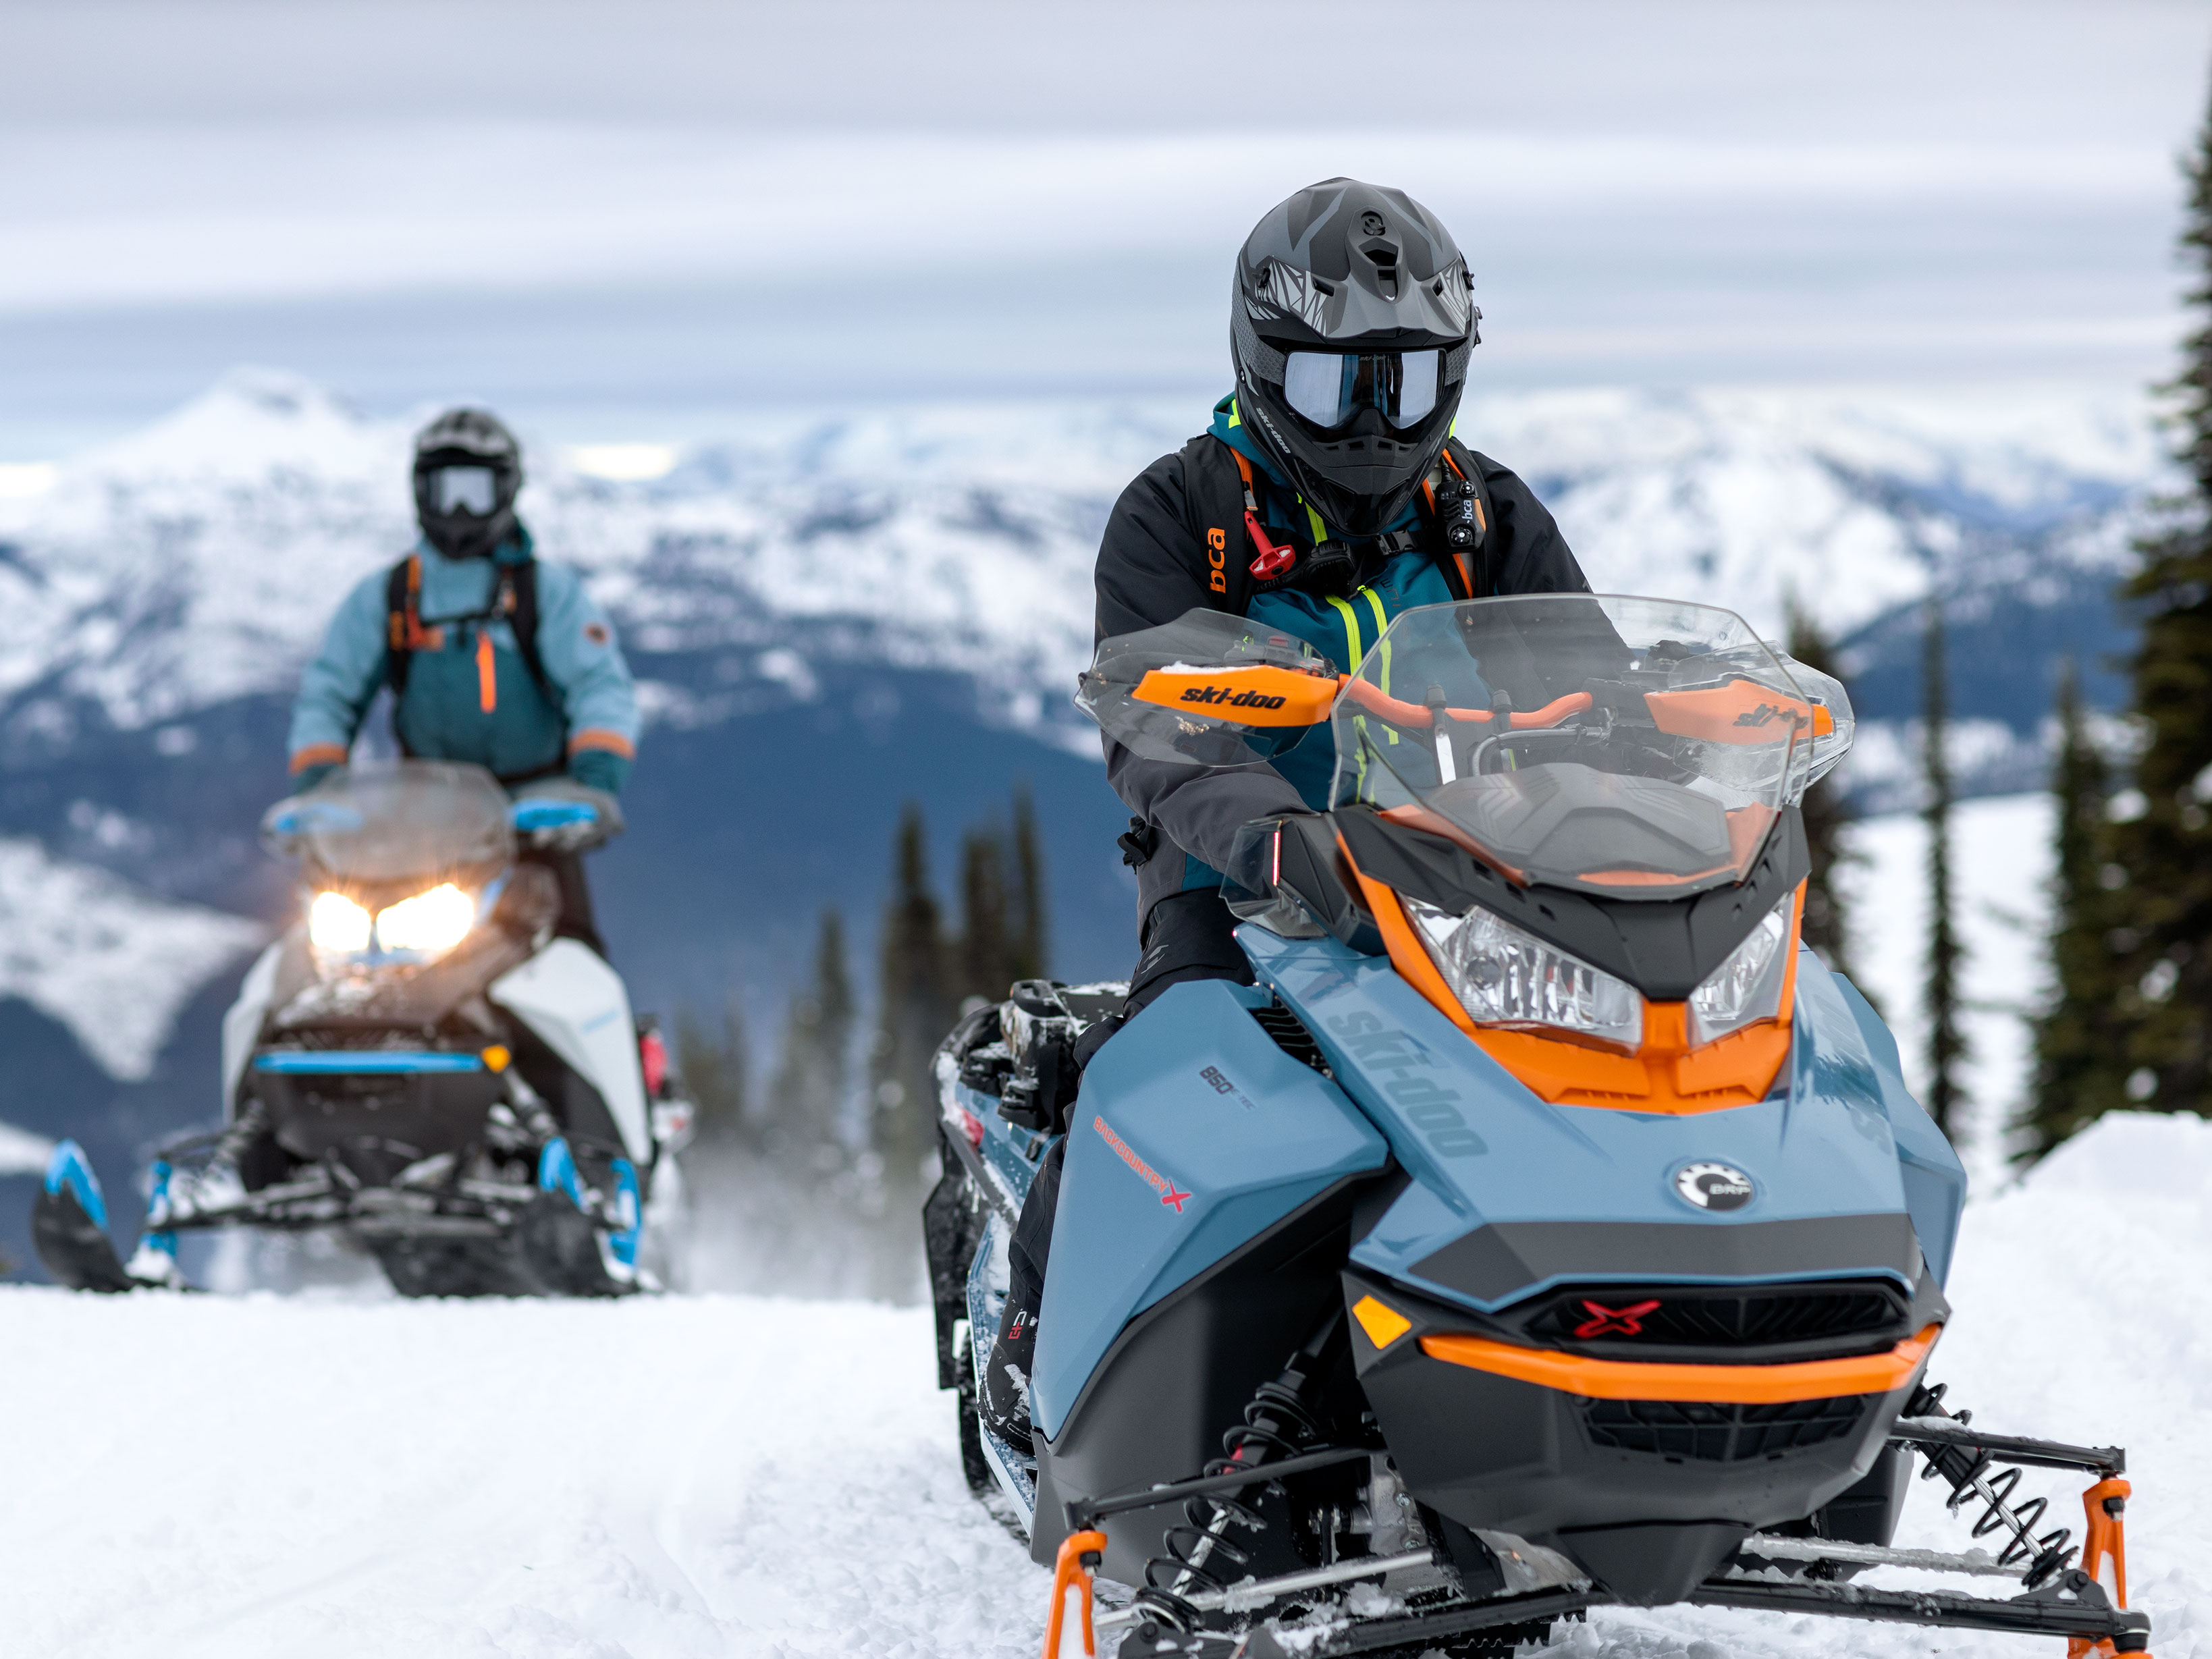 2022 Ski-Doo Backcountry on a trail